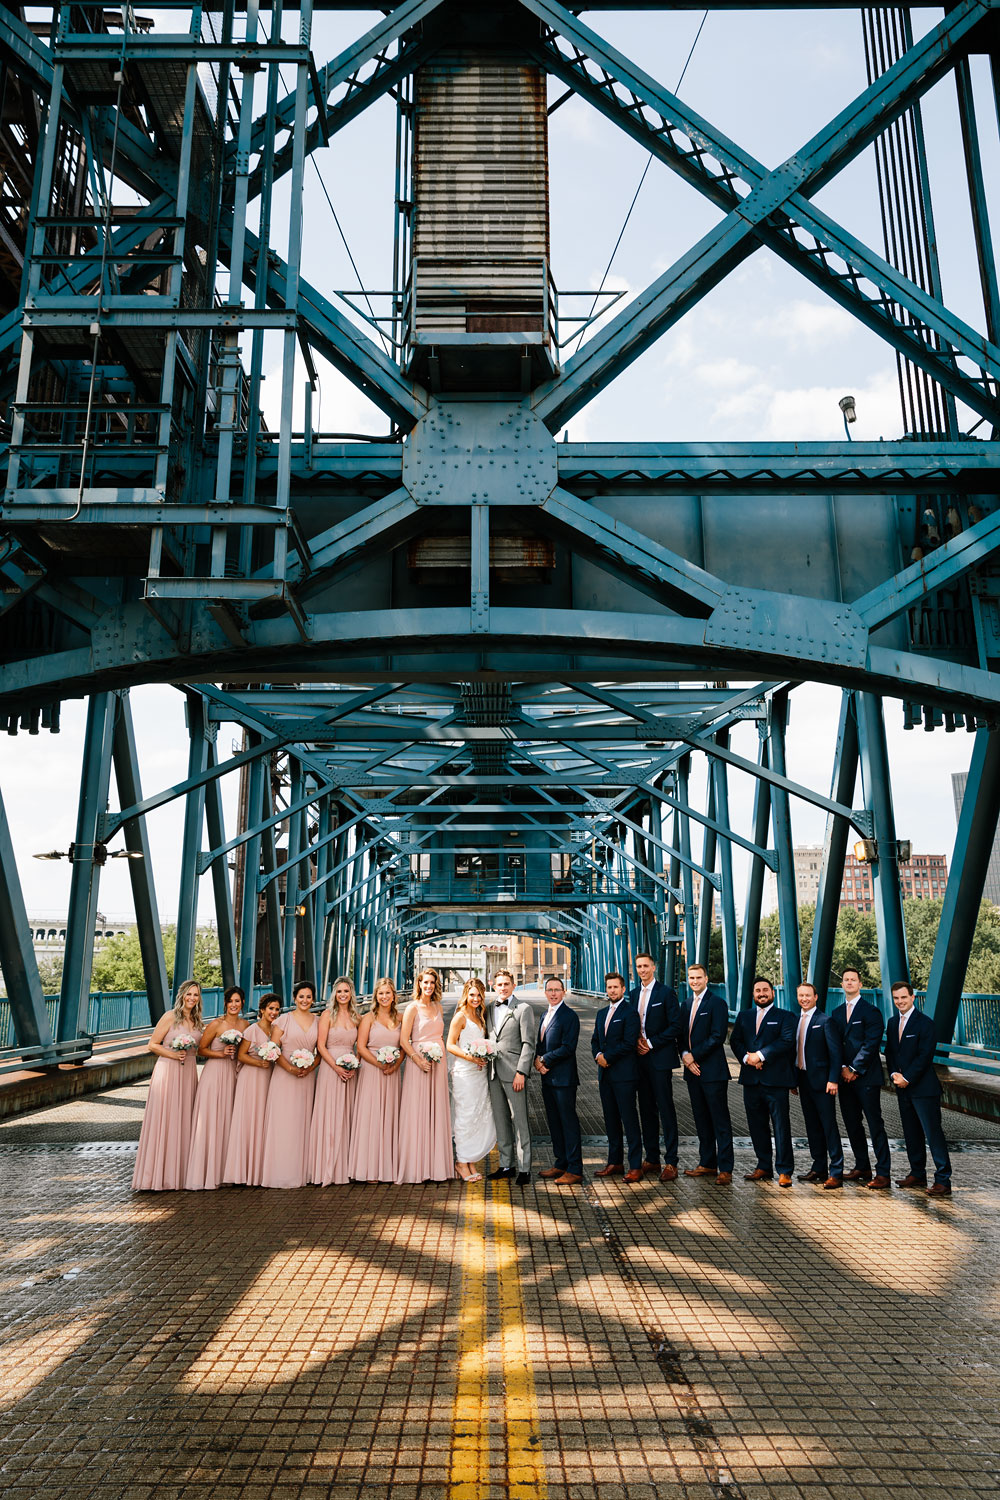 tenk-west-bank-flats-photography-wedding-photographers-in-cleveland-downtown-industrial-66.jpg